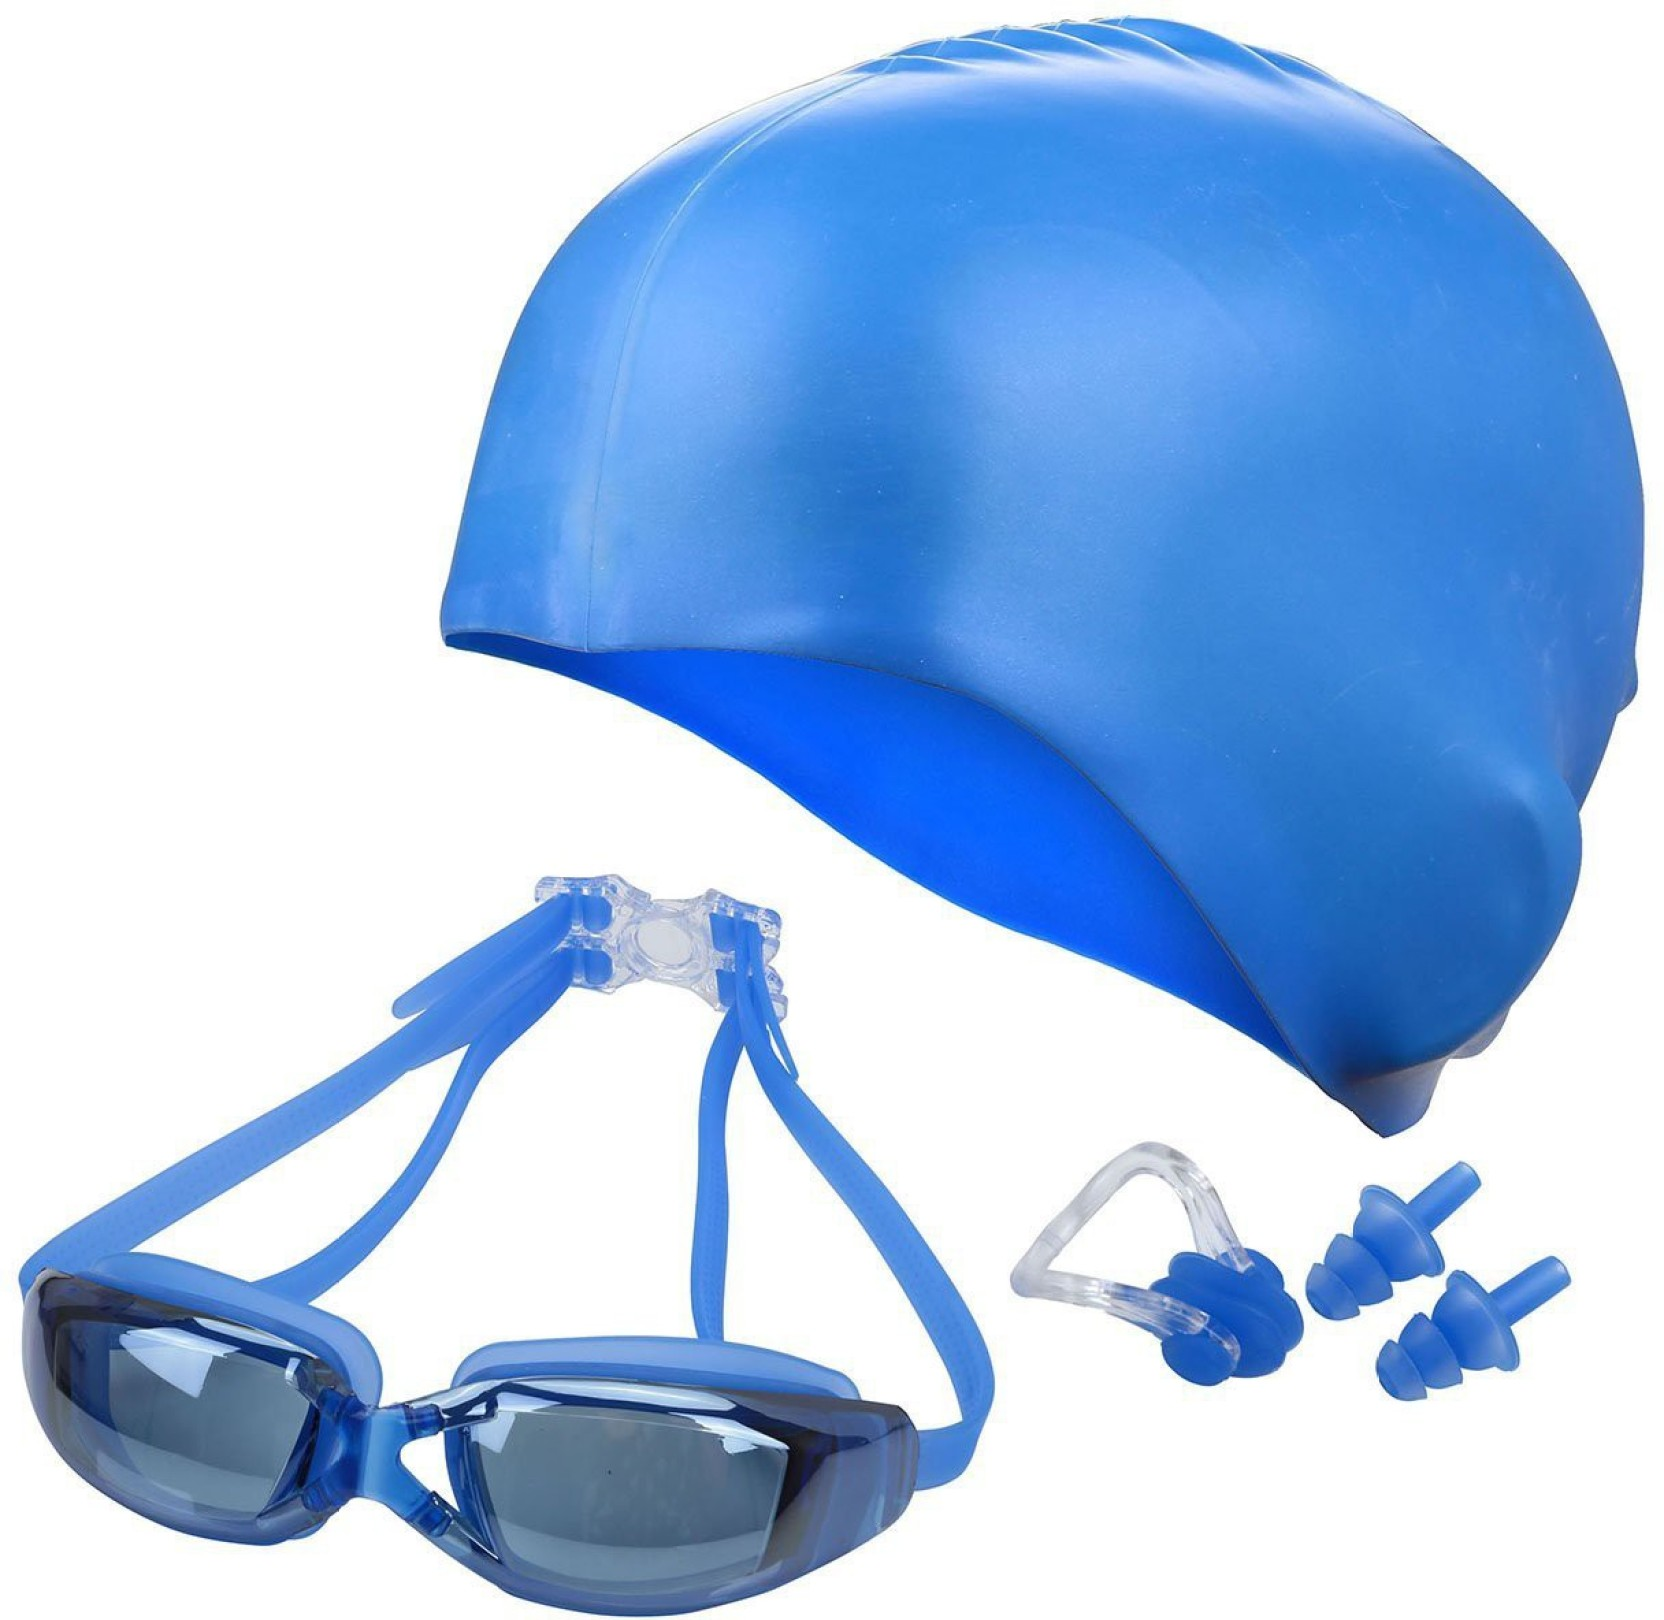 f01f3e3d55a QUINERGYS ™ Moderate Blue - Swimming Goggles+ Nose Clip+ Silicone Swim  Cap+Ear Plugs,Swim Goggles Anti Fog UV Protection for Adult Men Women Youth  Kids ...